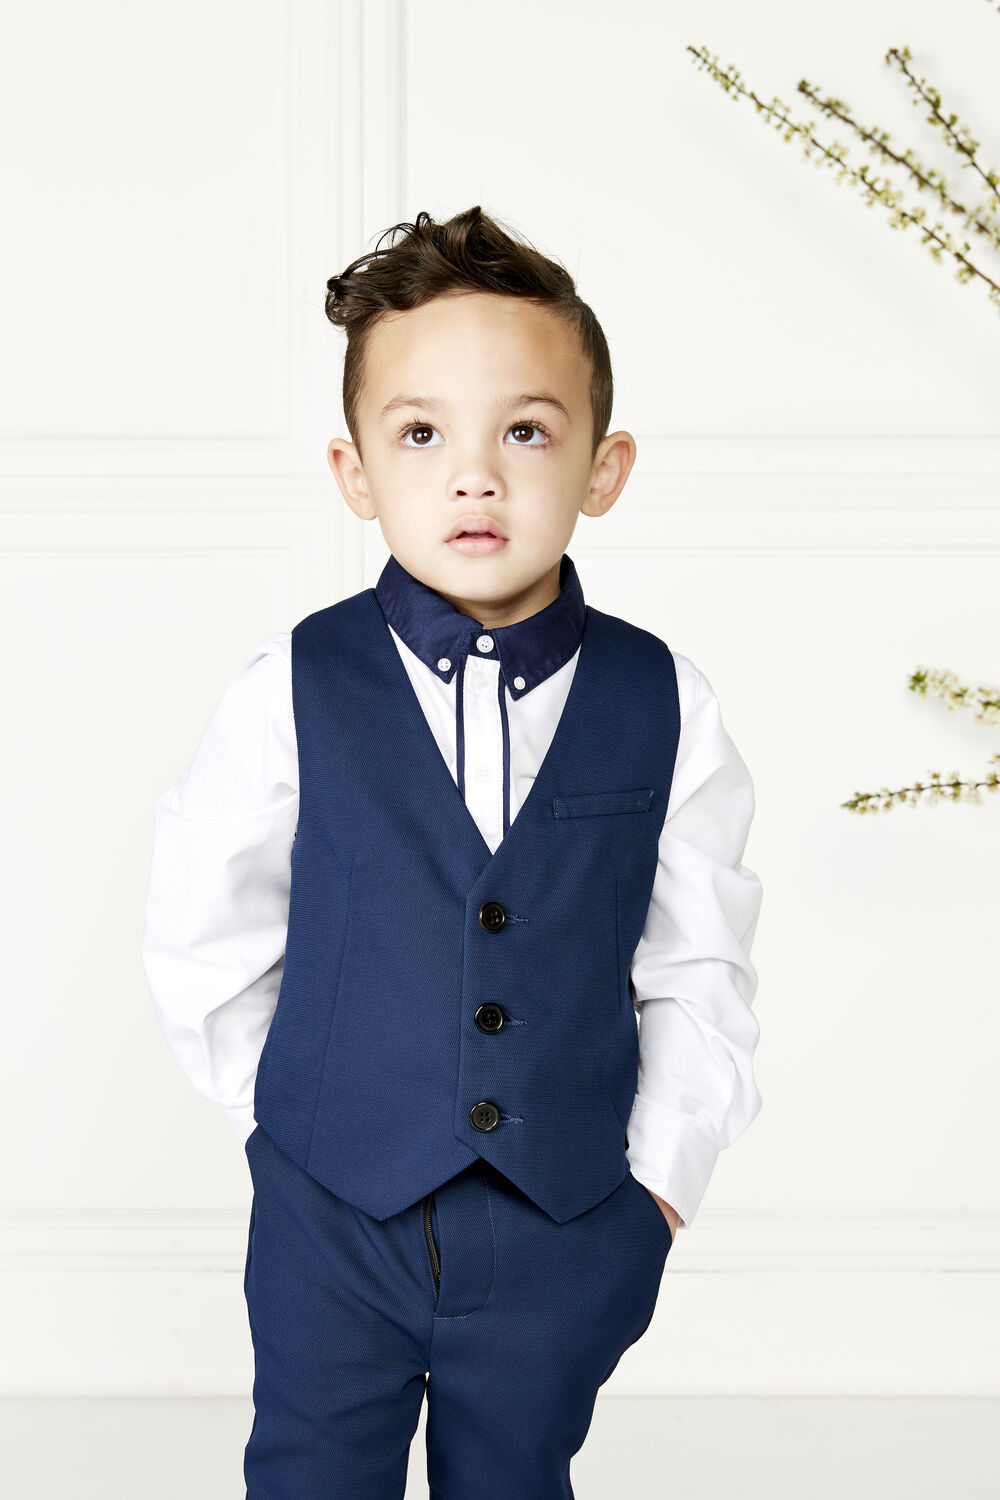 JUNIOR BOY TEXTURED SUIT VEST in colour DRESS BLUES